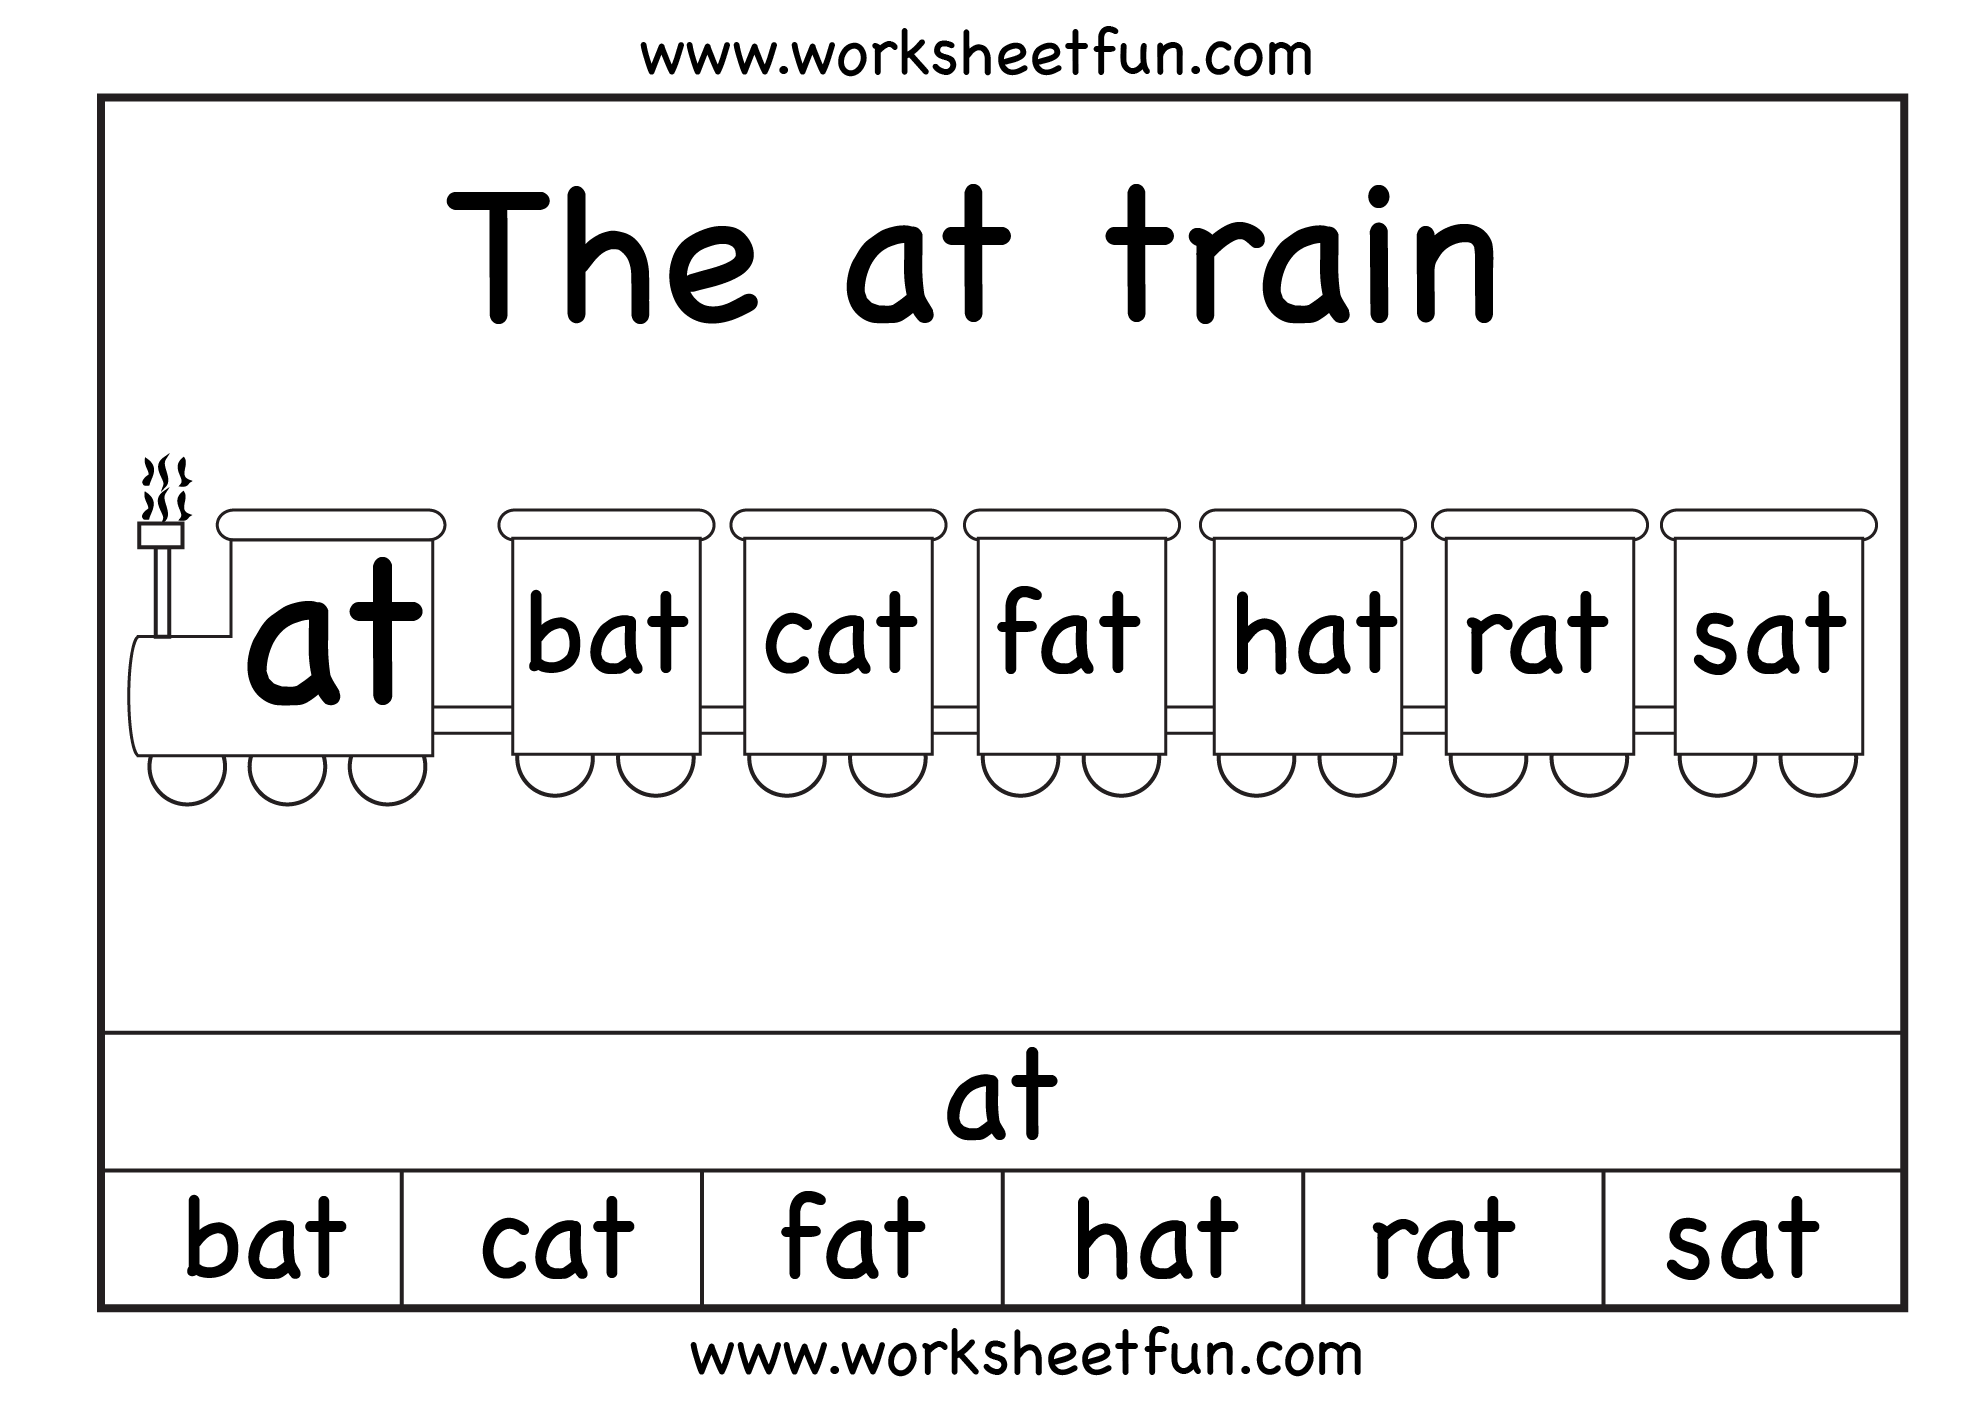 The At Train 1 Worksheet Free Printable Worksheets Worksheetfun